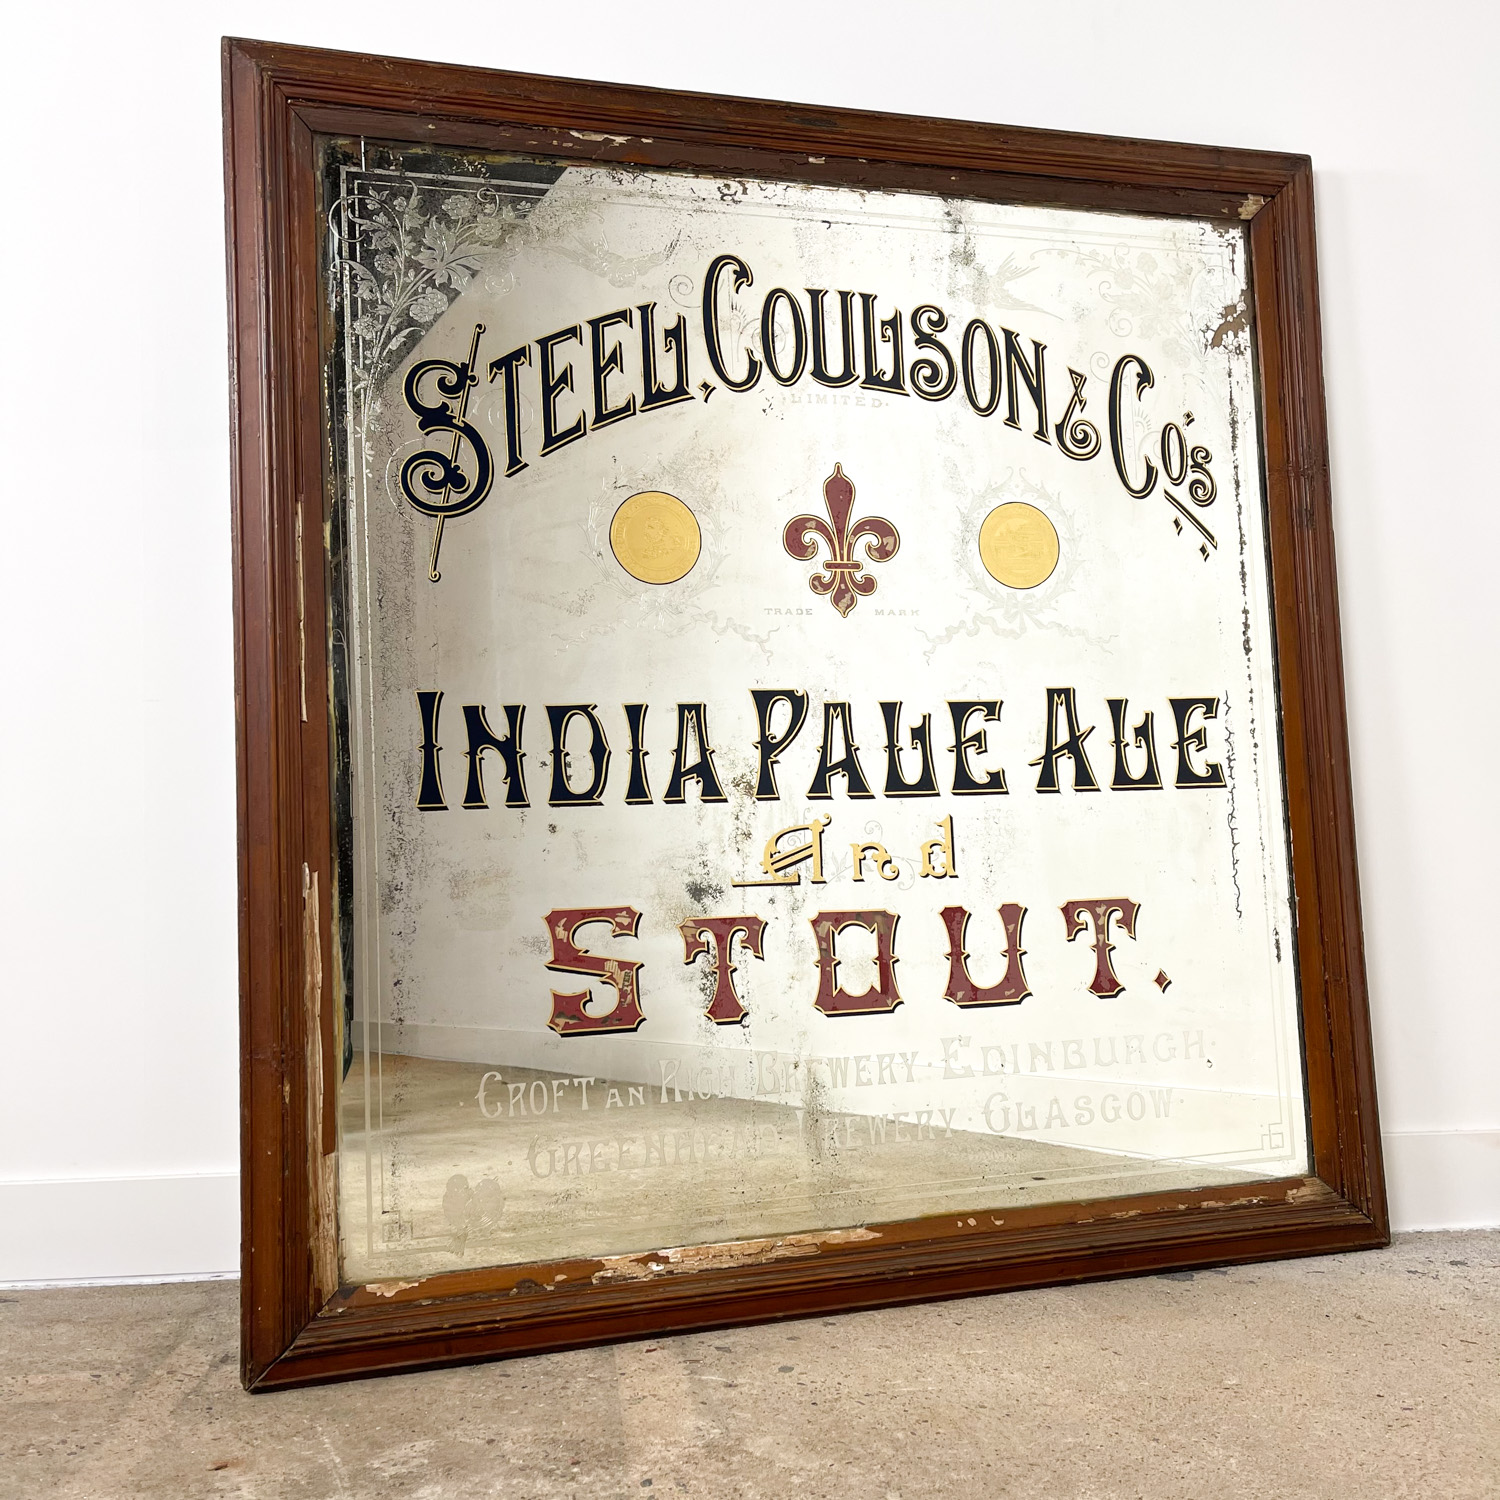 Antieke pub spiegel India pale ale Stout van Steel Coulson & Co 1873